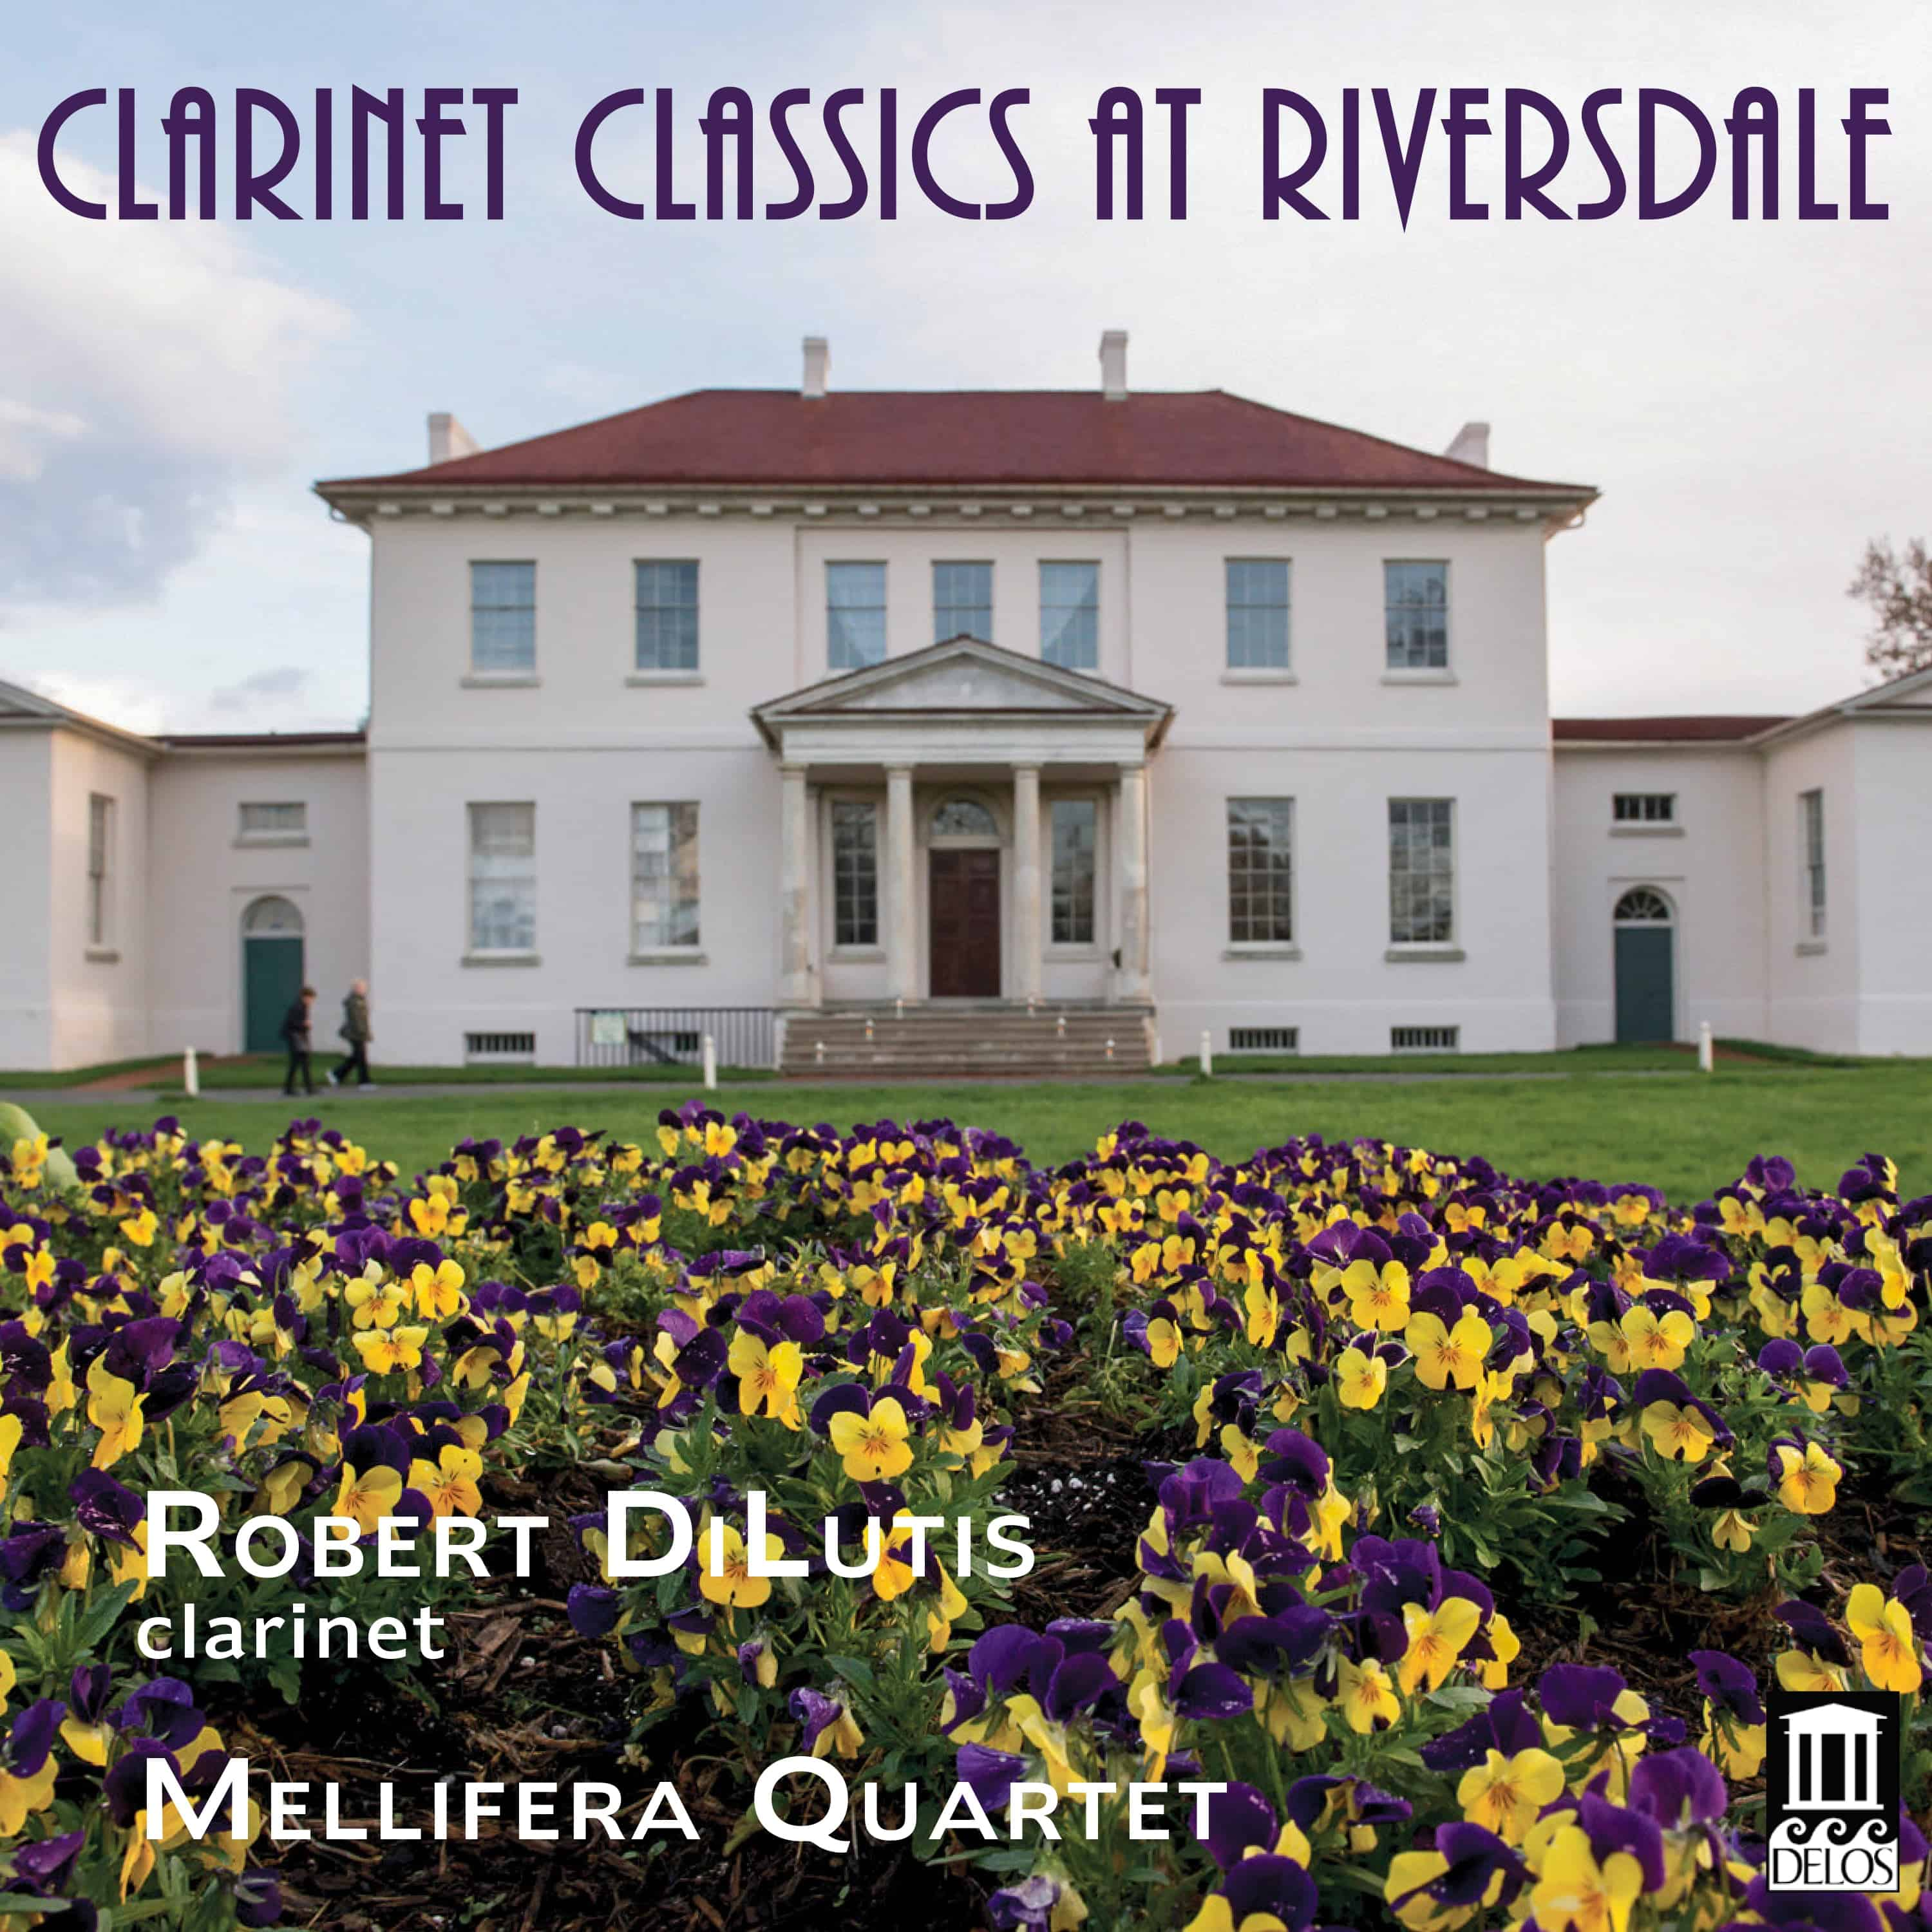 Image result for chamber music at riversdale dilutis